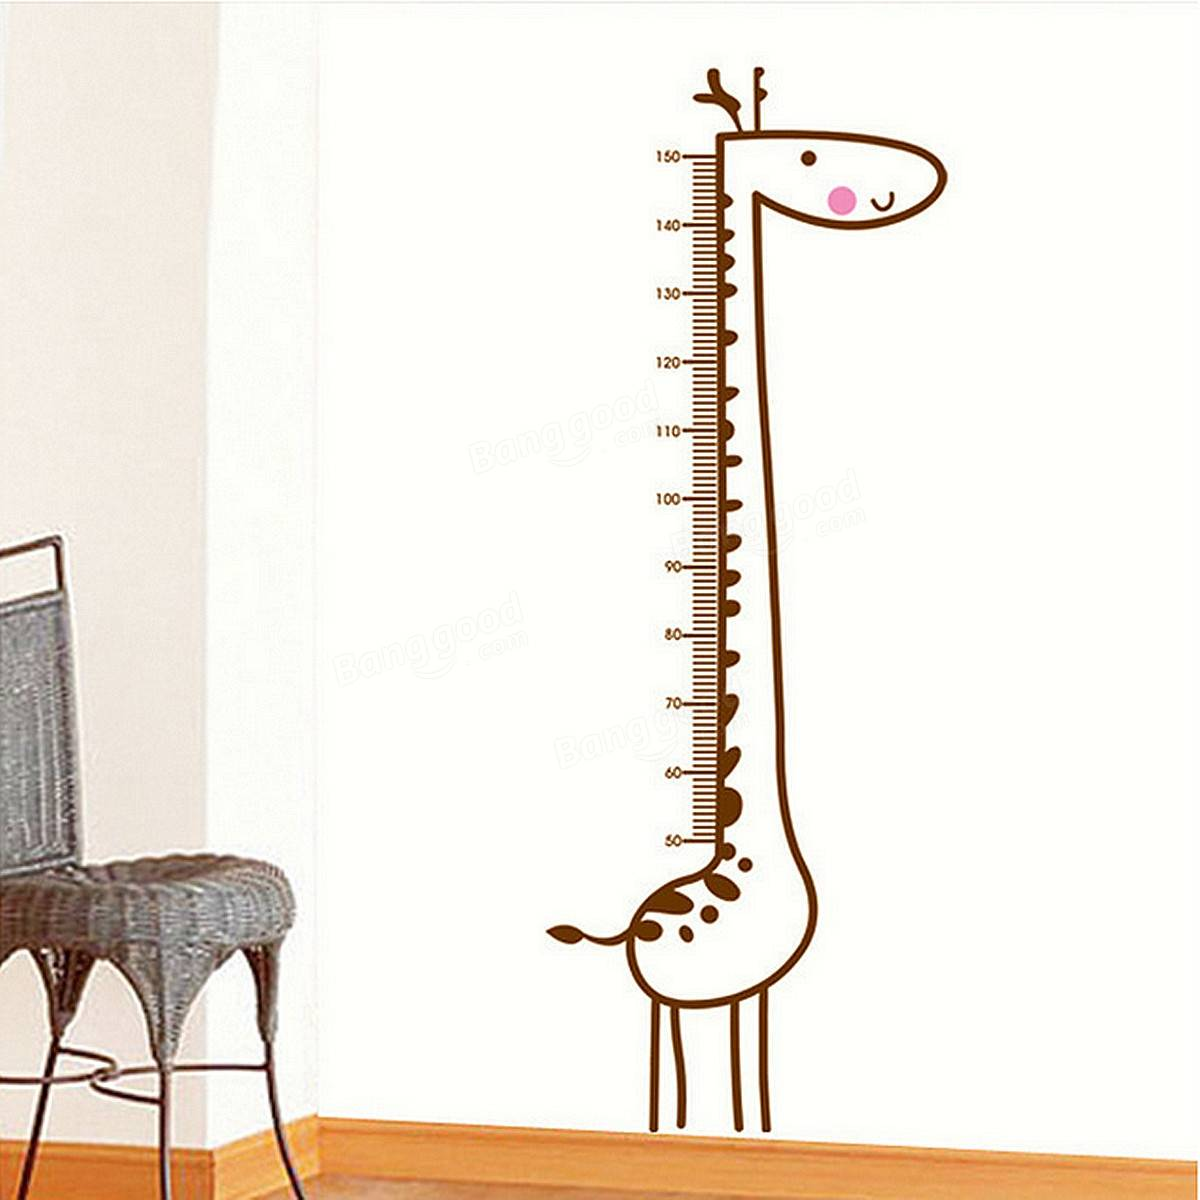 Giraffe Wall Stickers Kids Children Room Growth Chart Height Decal Measure Removable Home Decoration